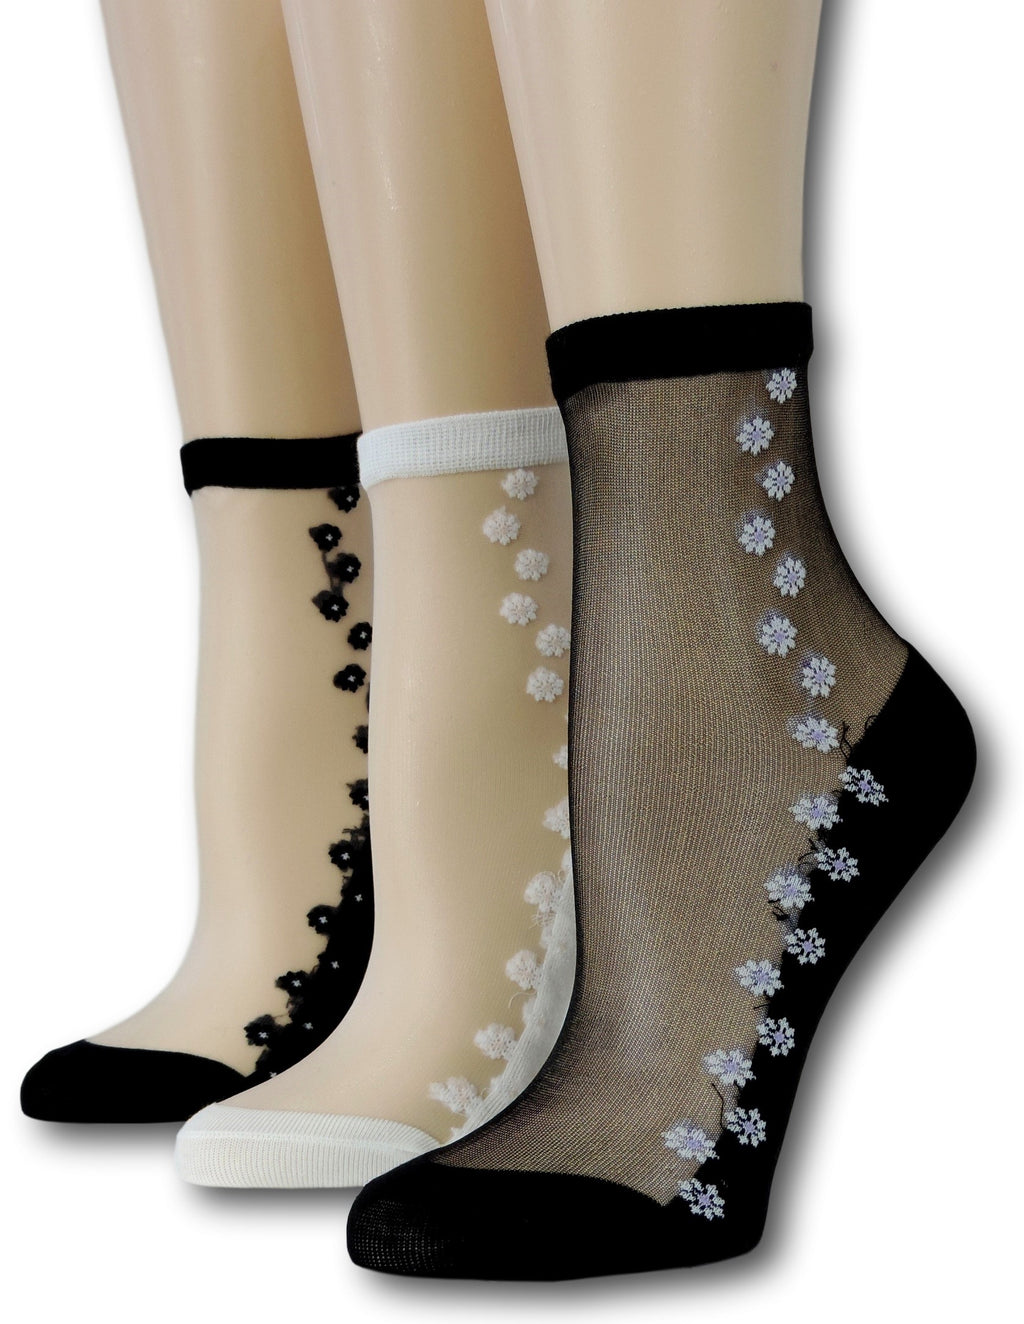 Seamless Floral Sheer Socks (Pack of 3 Pairs)